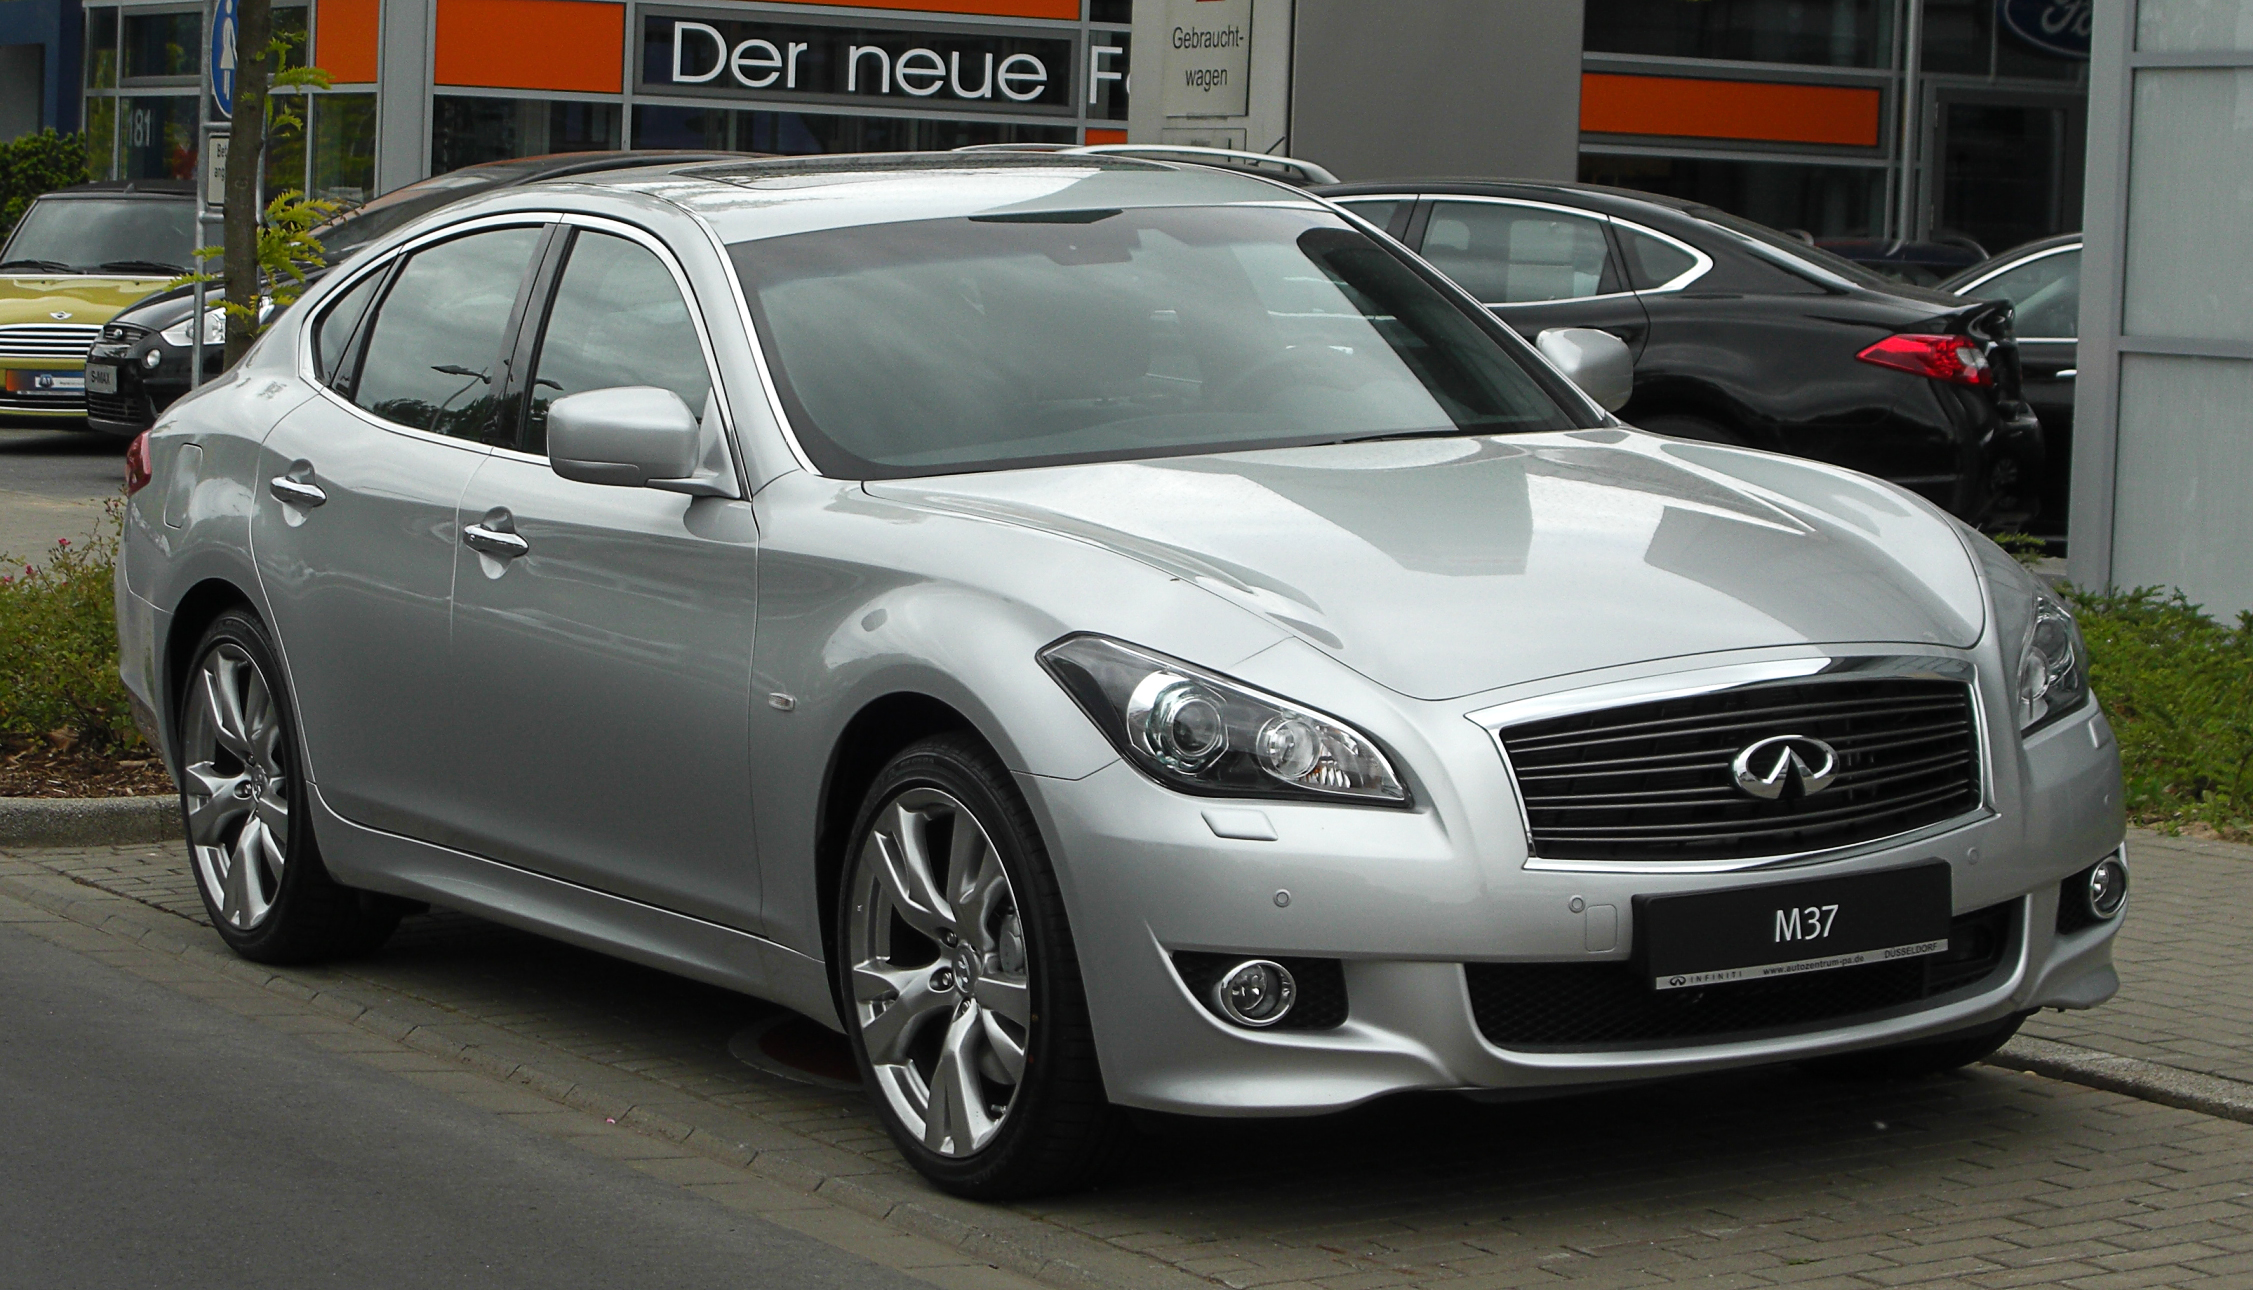 file infiniti m37 s y51 frontansicht 28 mai 2011 d wikimedia commons. Black Bedroom Furniture Sets. Home Design Ideas